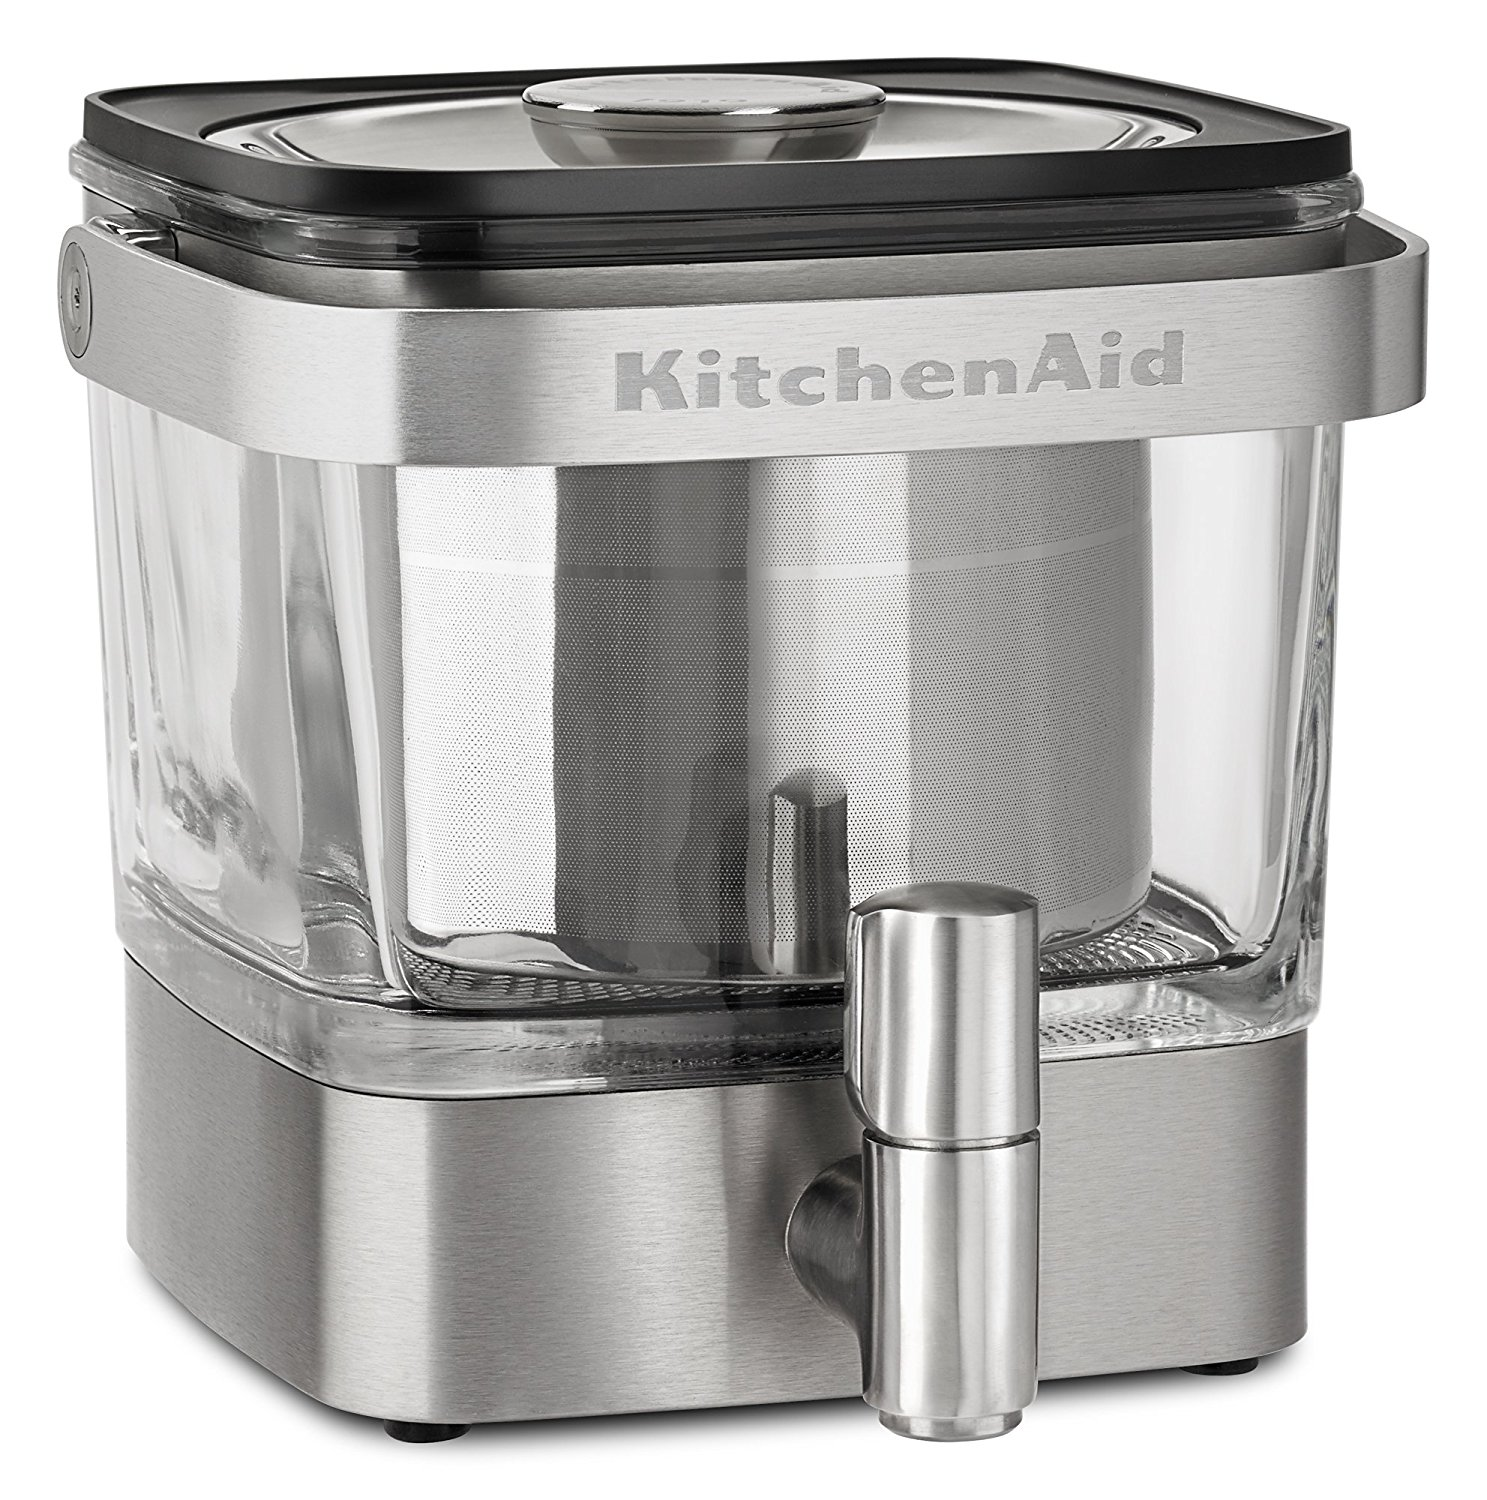 Kitchen Aid cold brew.jpg